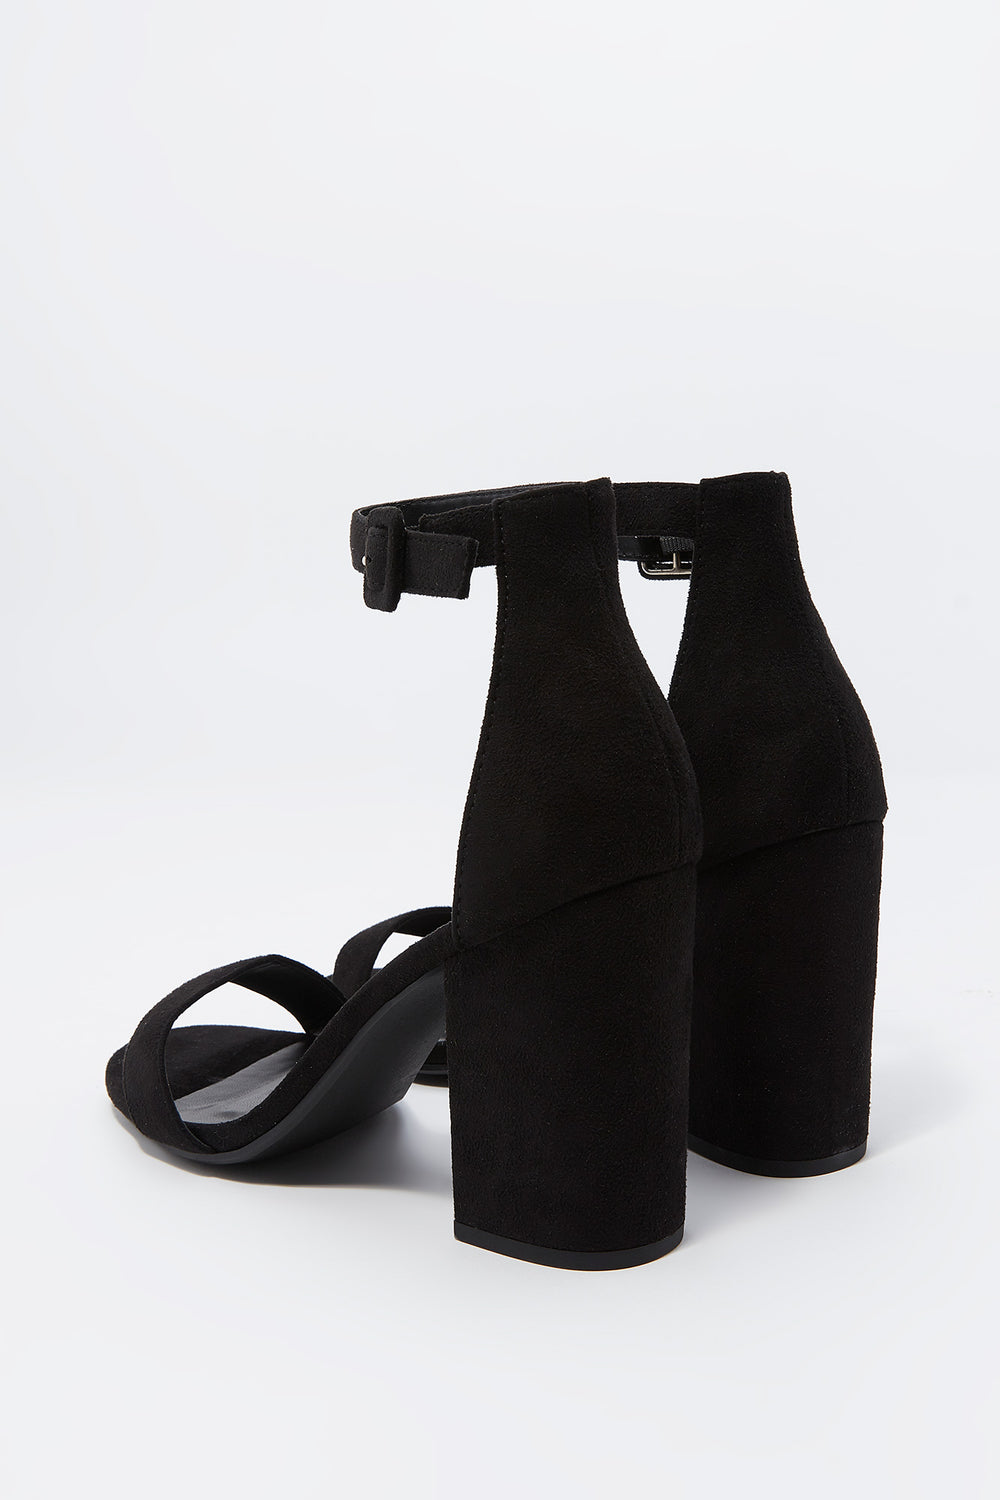 Open Toe Buckle Strap Block Heel Sandal Black